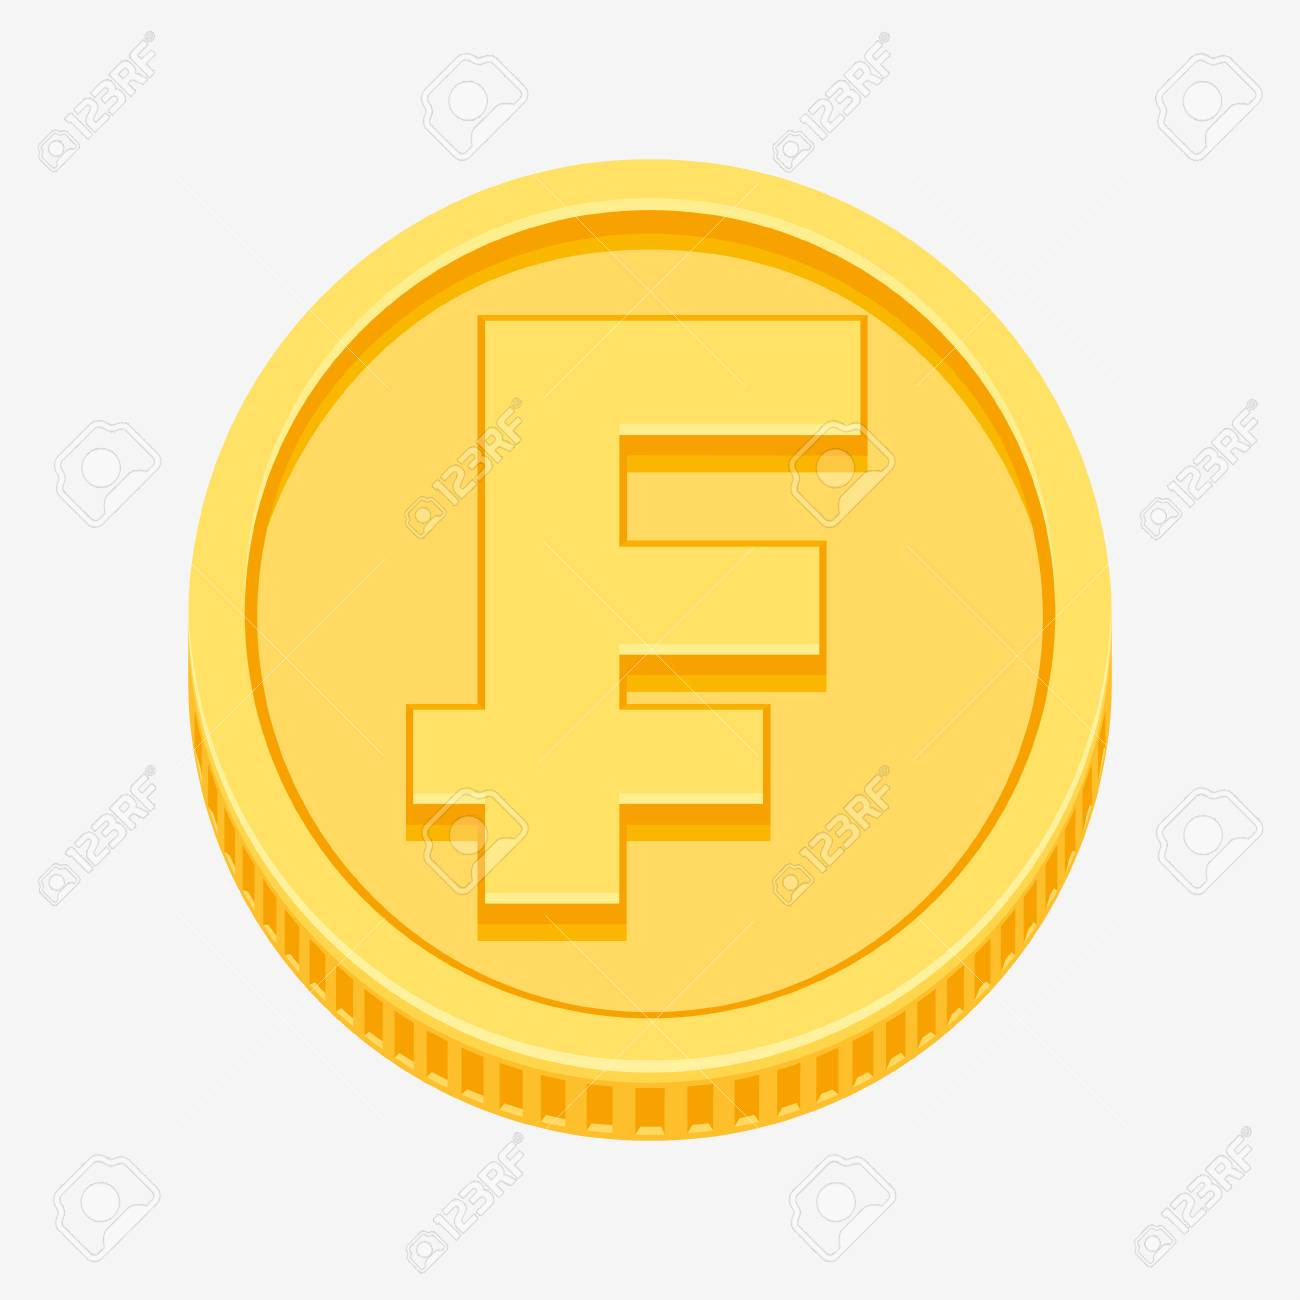 Franc Currency Symbol On Gold Coin Royalty Free Cliparts Vectors